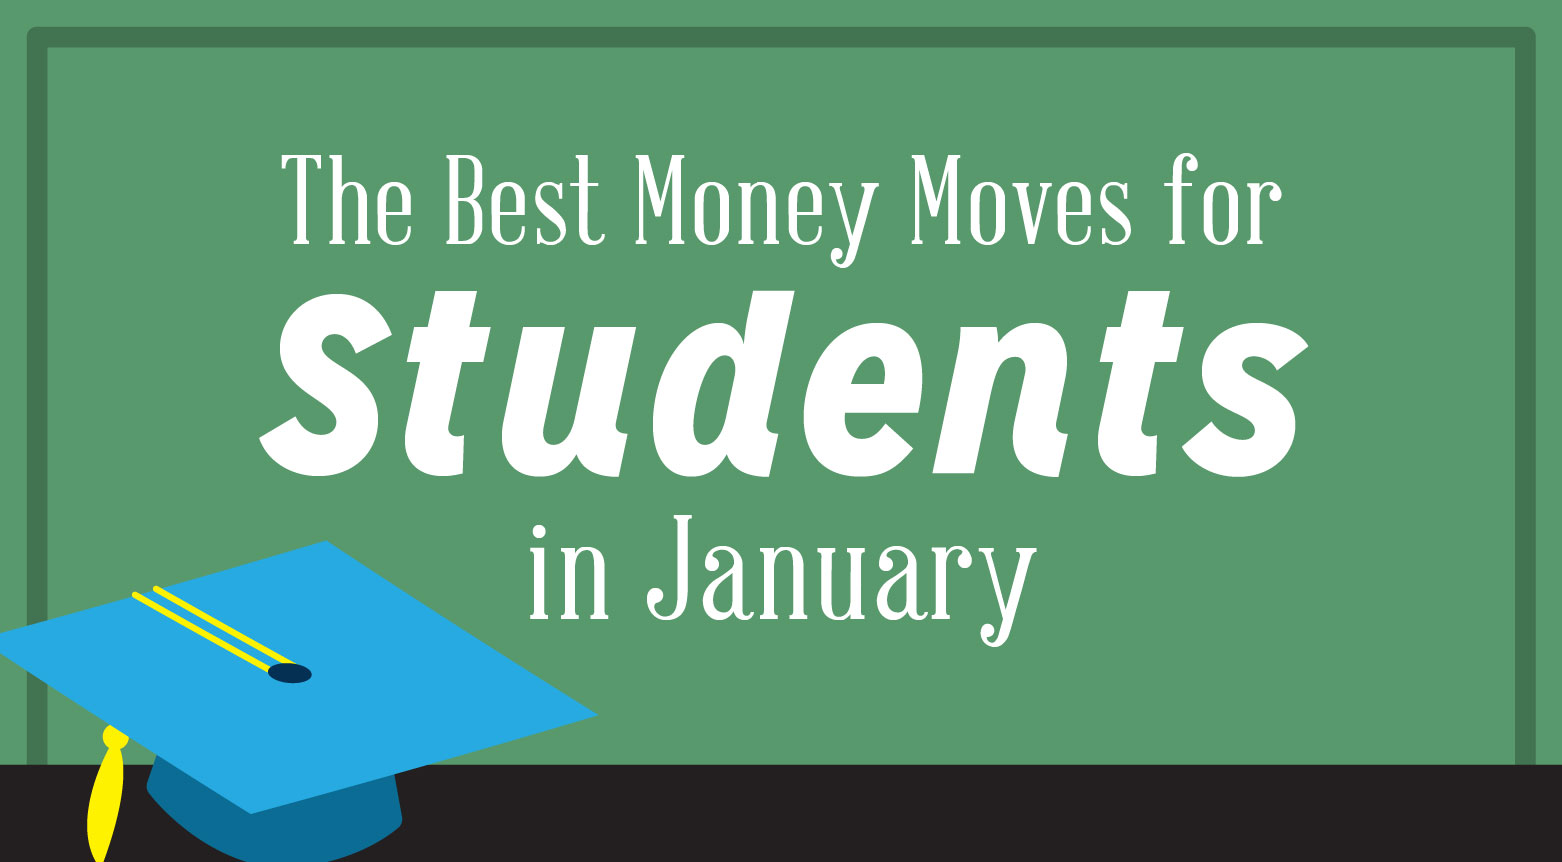 The Best Money Moves for Students in January